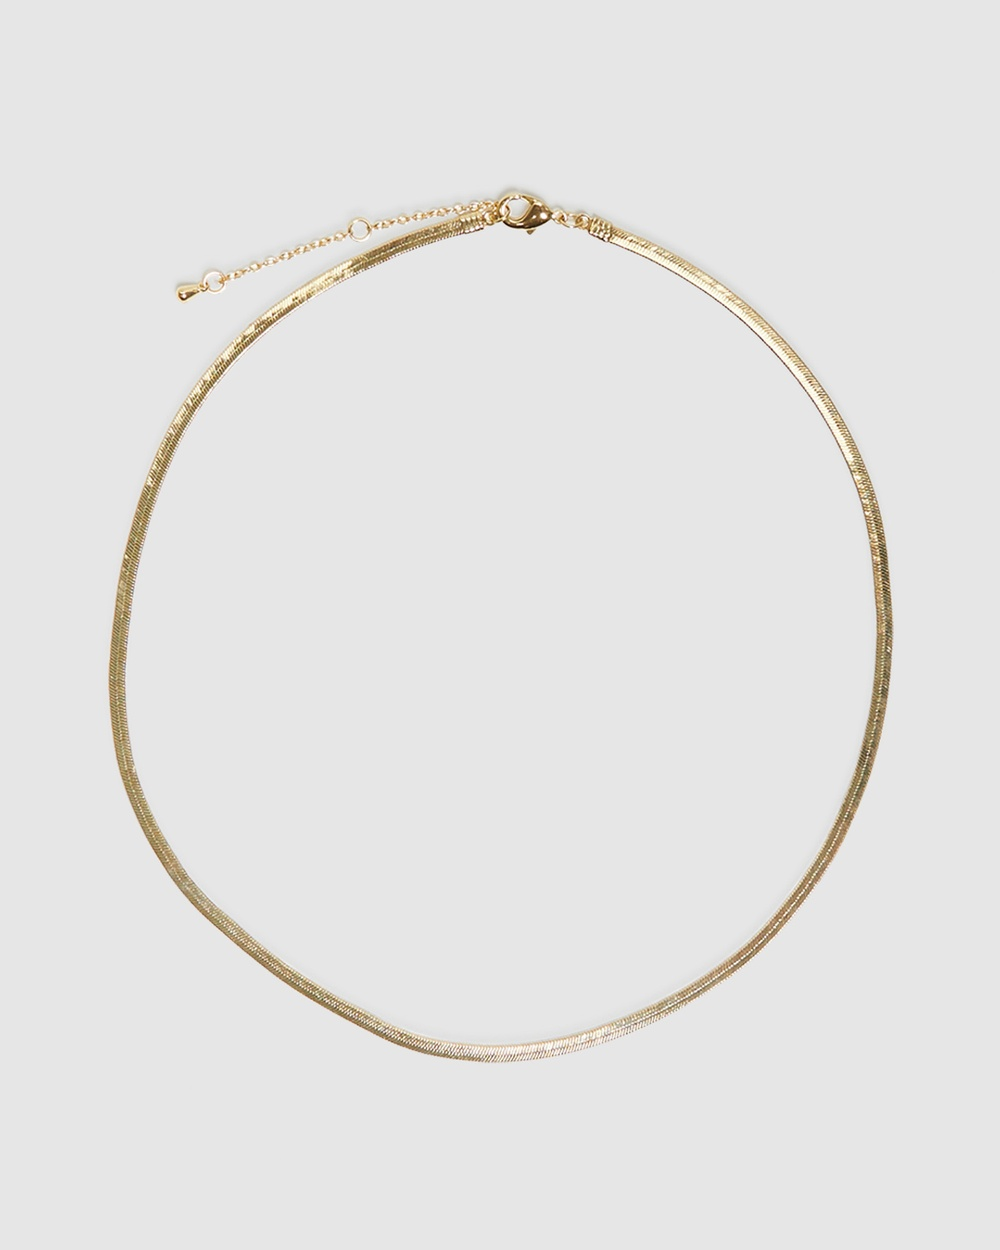 Alice In The Eve 14k Gold Plated Snake Chain Necklace Jewellery GOLD